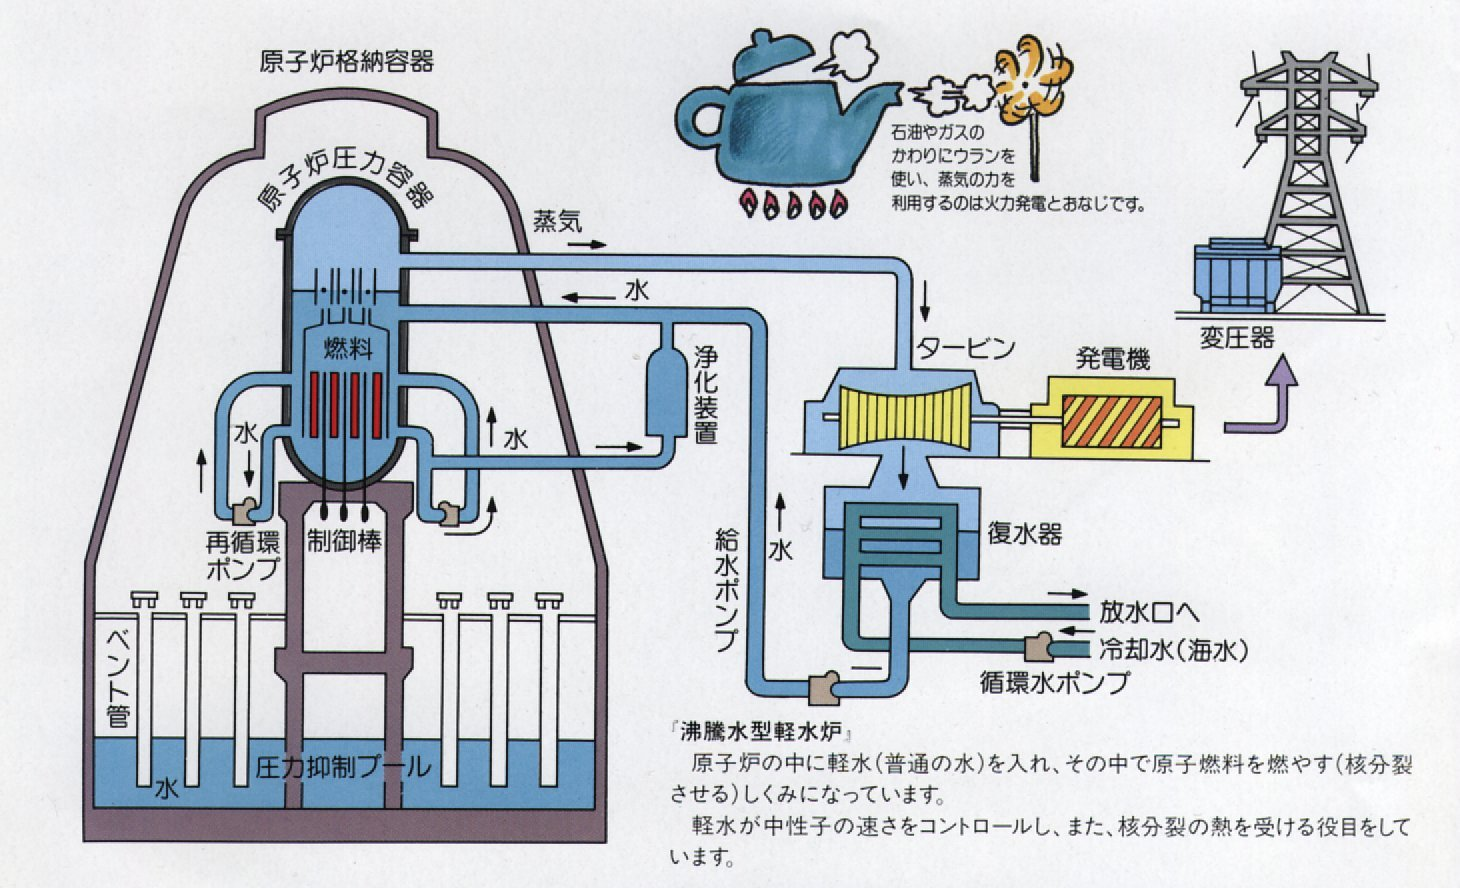 Bwr Boiling Water Reactors Enformable Power Plant Diagram Reactor Share This